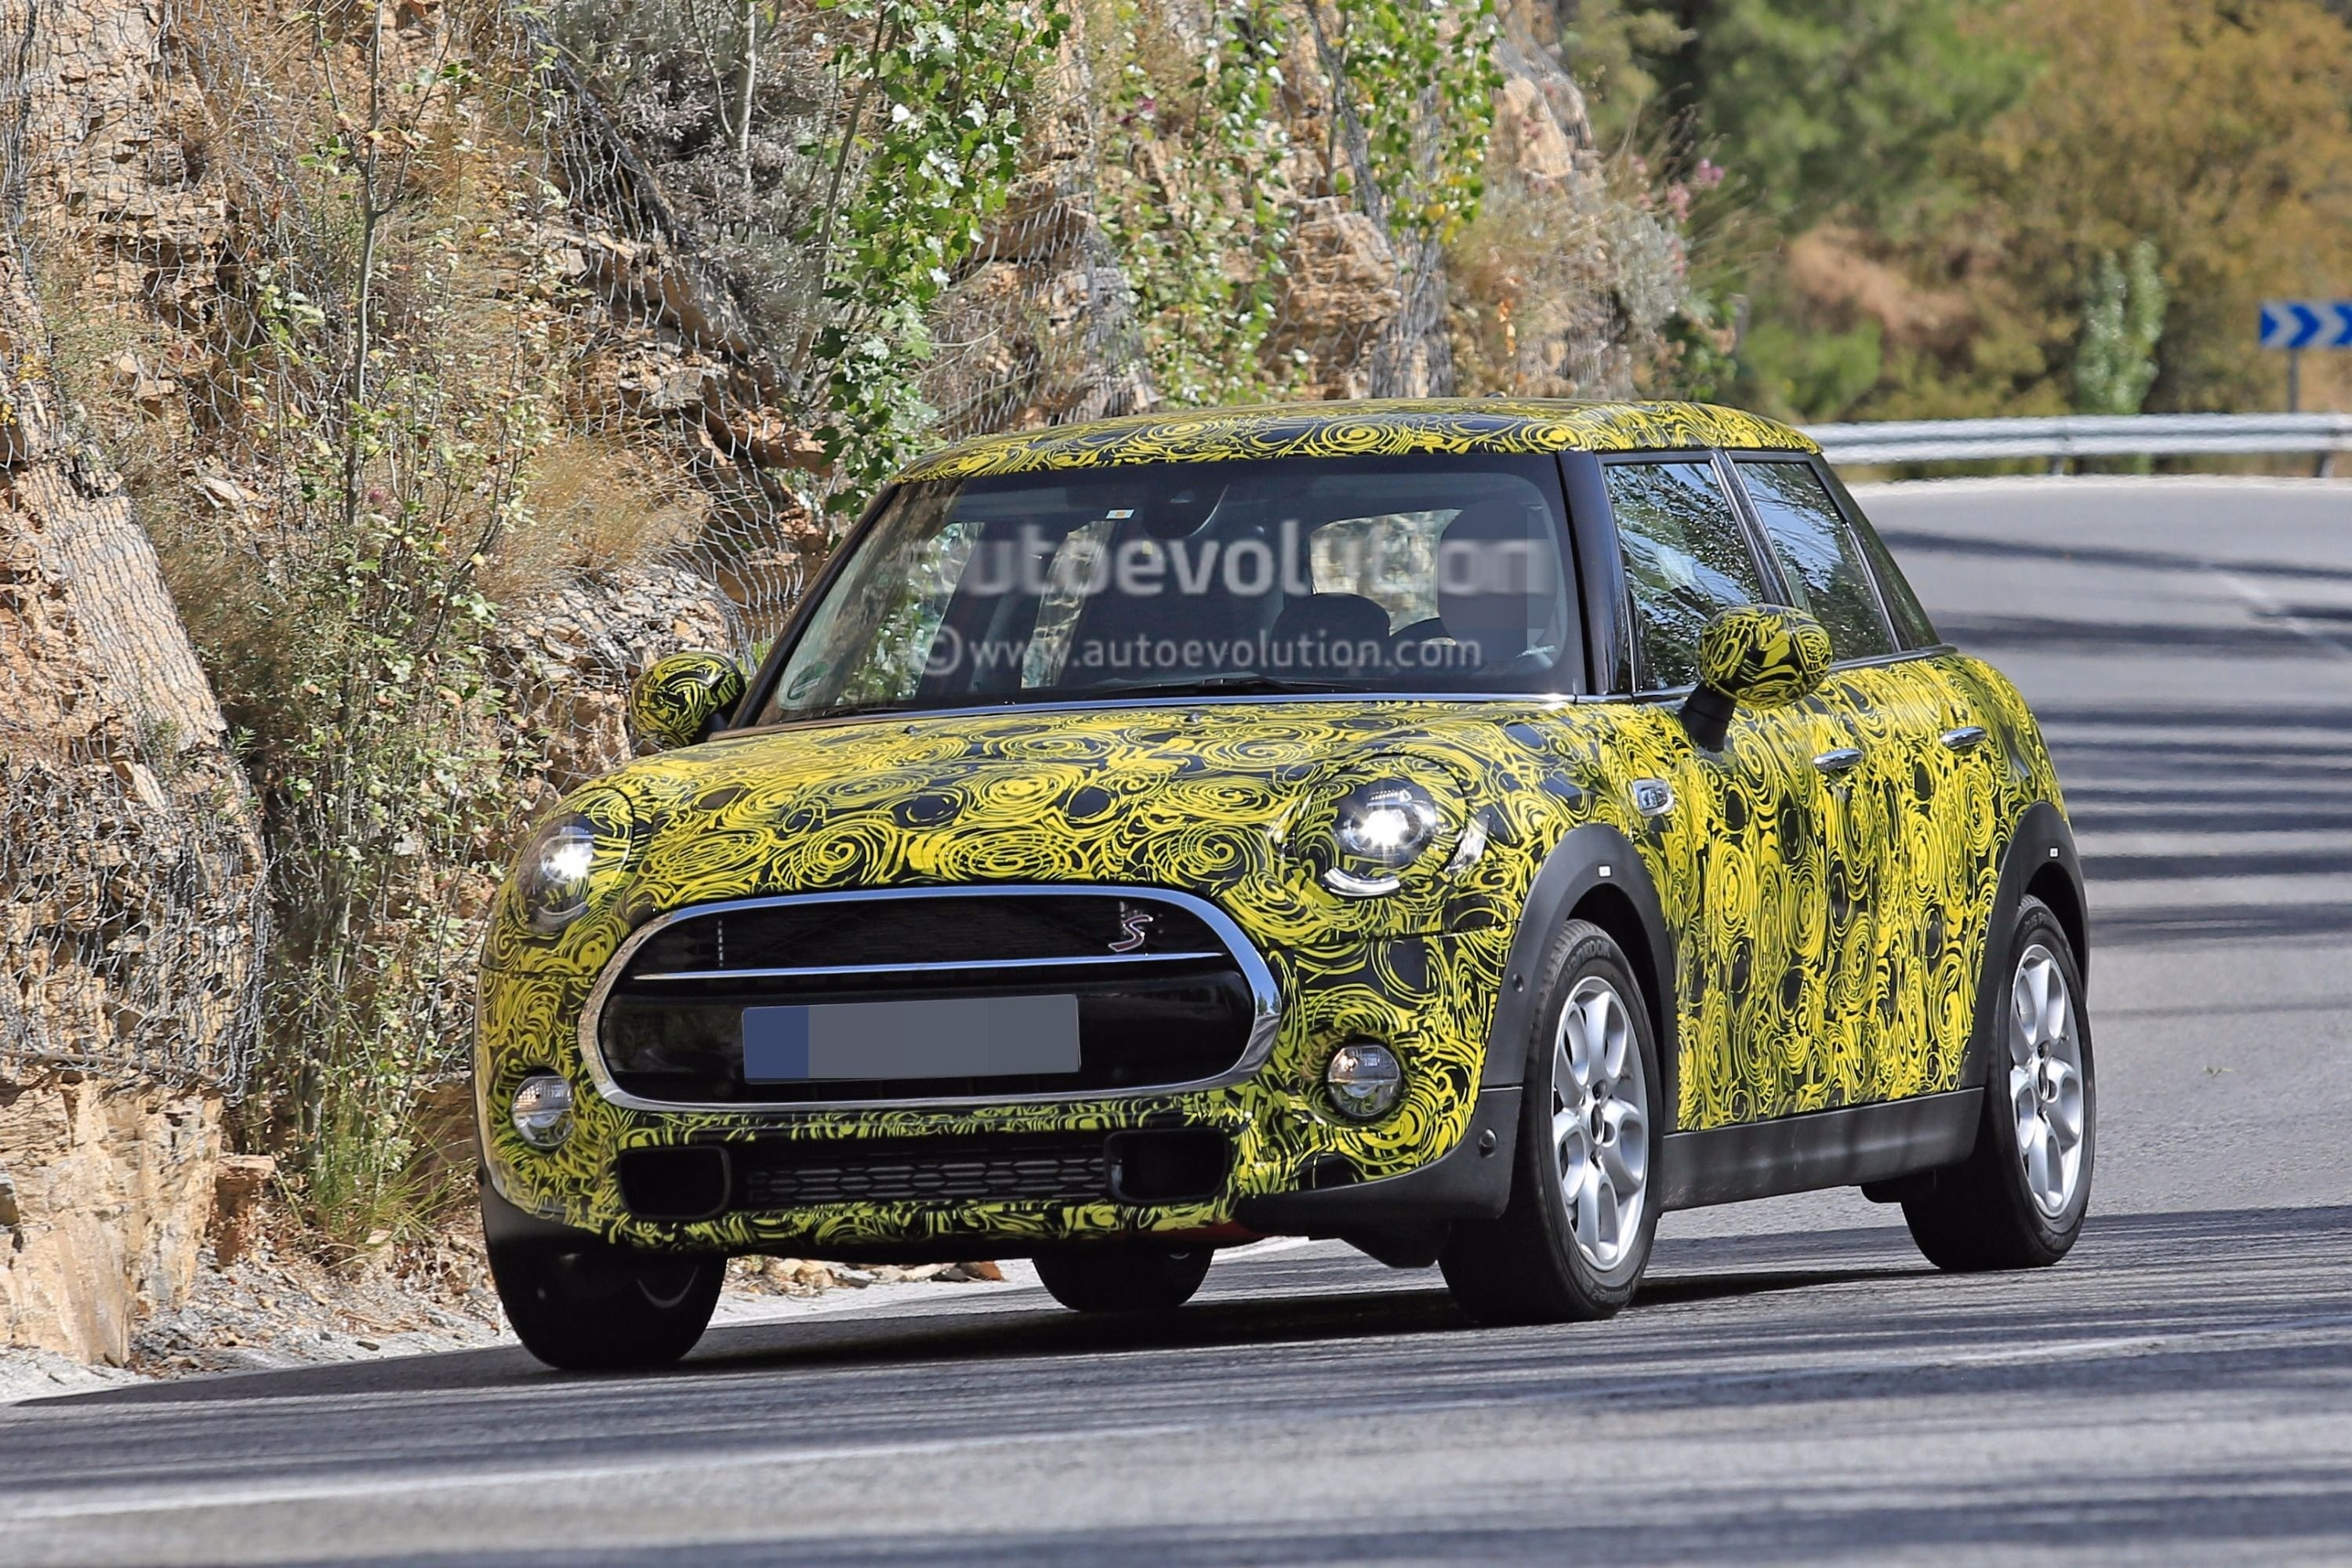 ... 2018 MINI 5-Door Hatch facelift (F55 LCI) ... & 2018 MINI 5-Door Hatch Facelift Spied With Redesigned Taillights ...